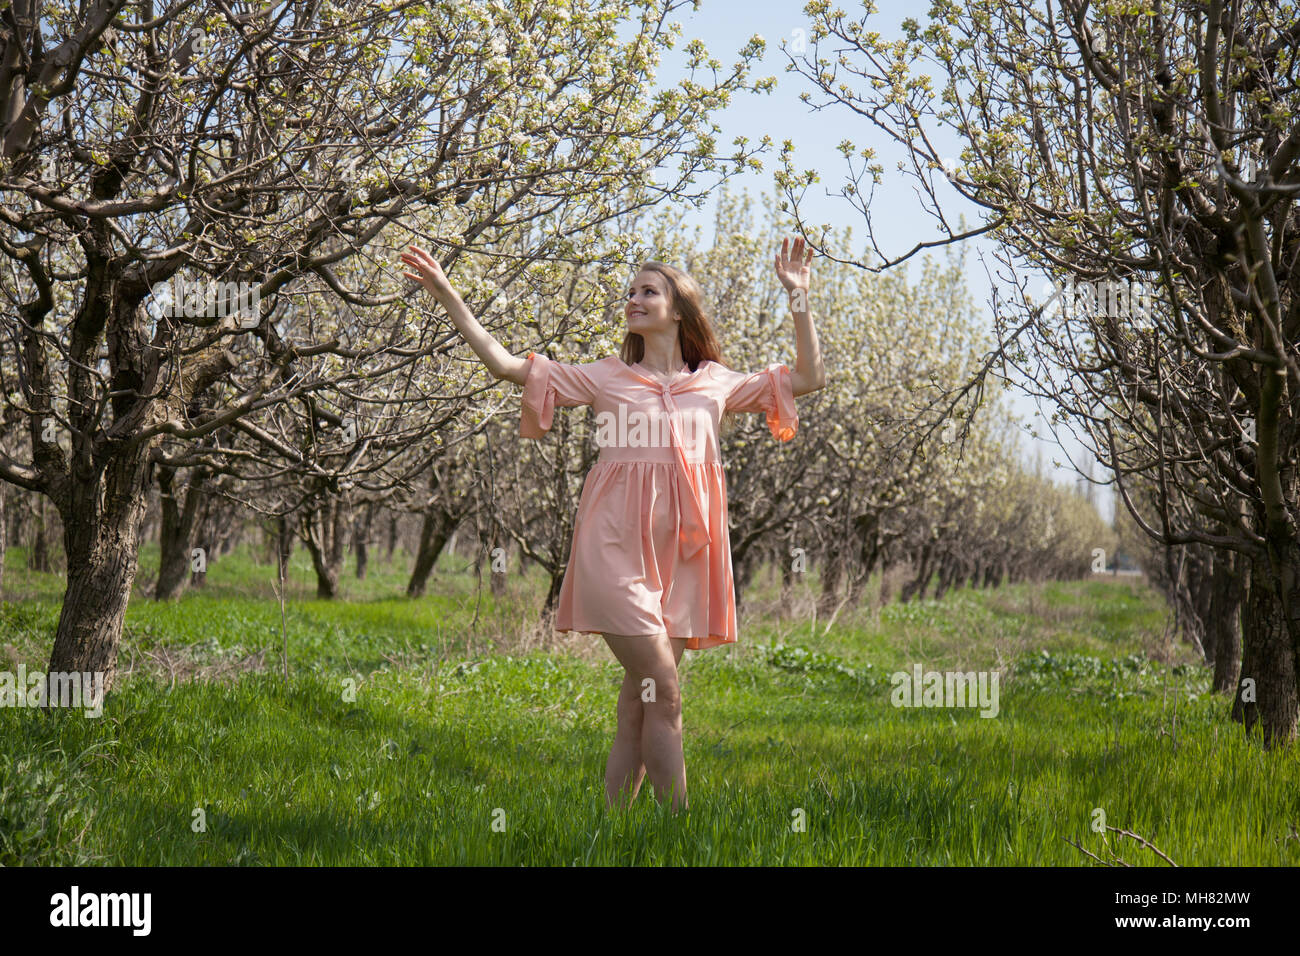 blonde woman in pink dress walks by a blooming garden in spring - Stock Image